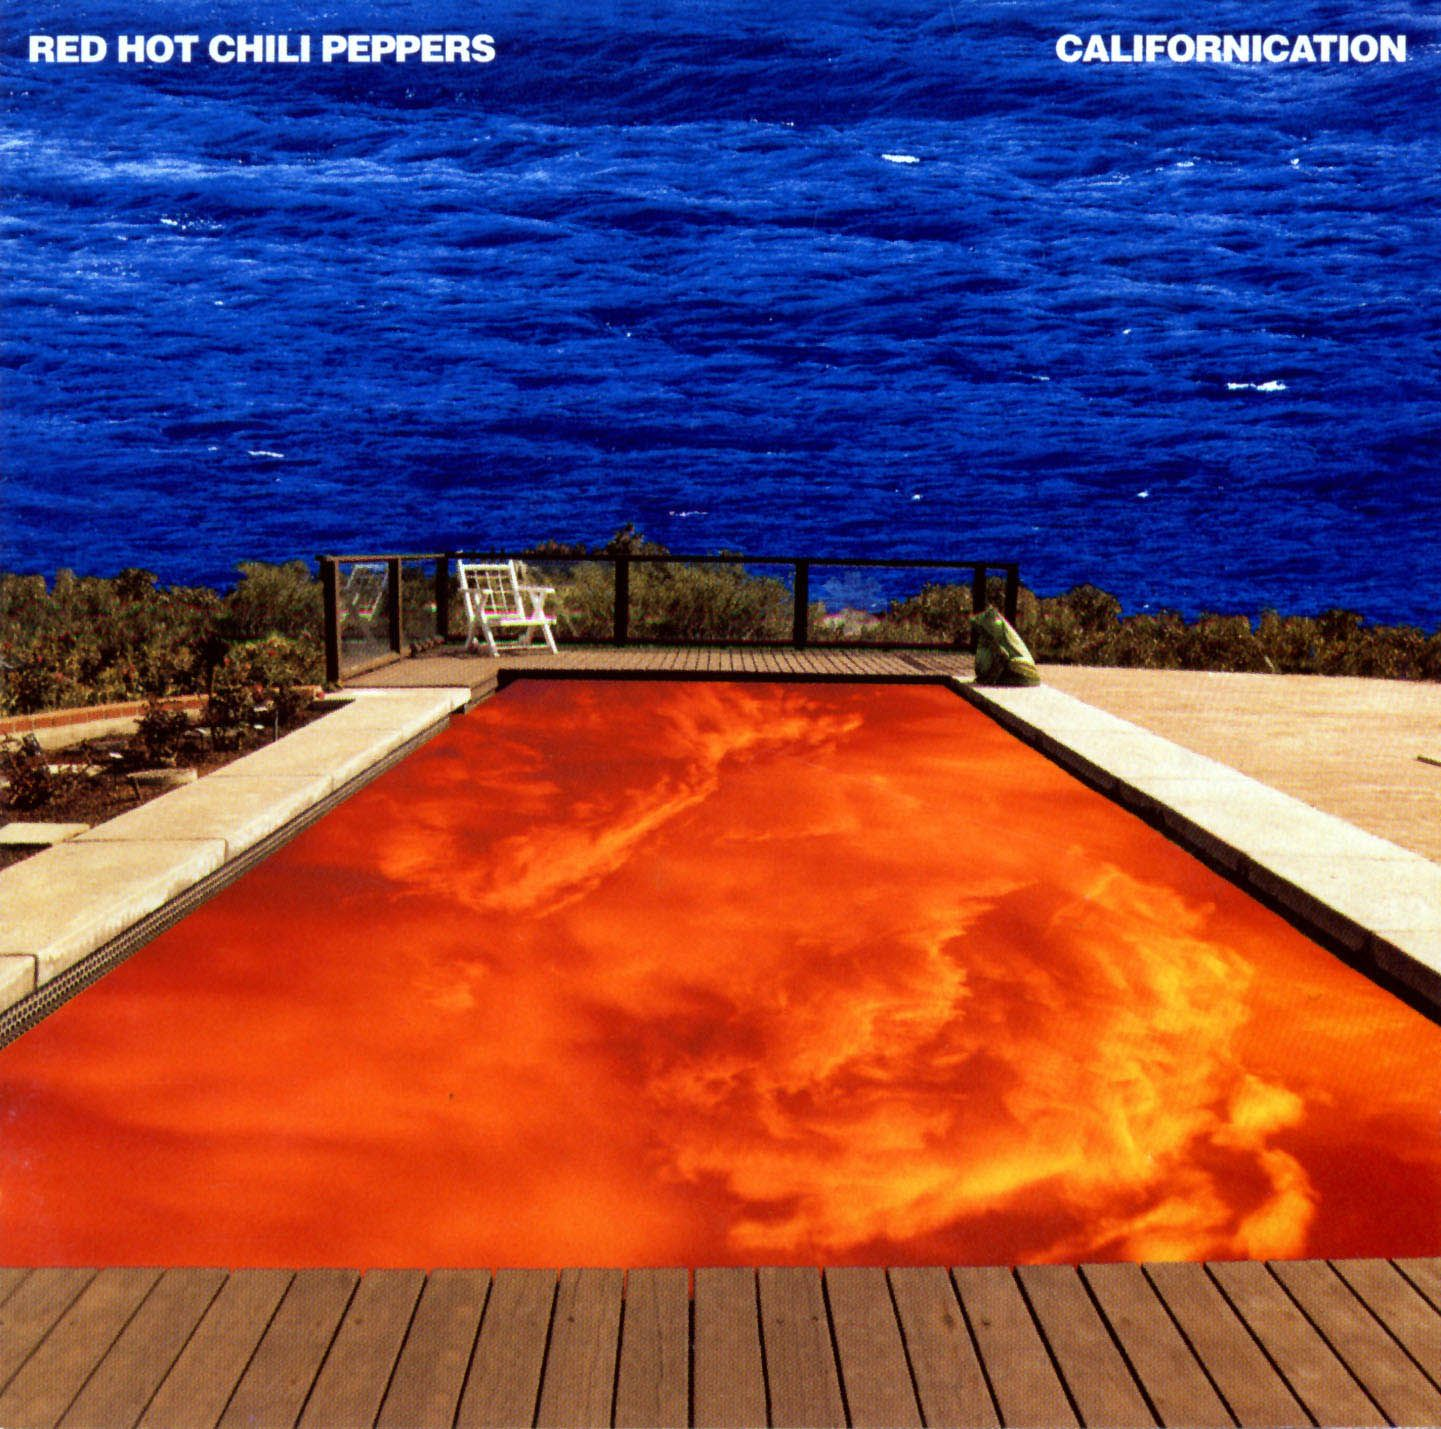 Red Hot Chili Peppers - Californication album cover